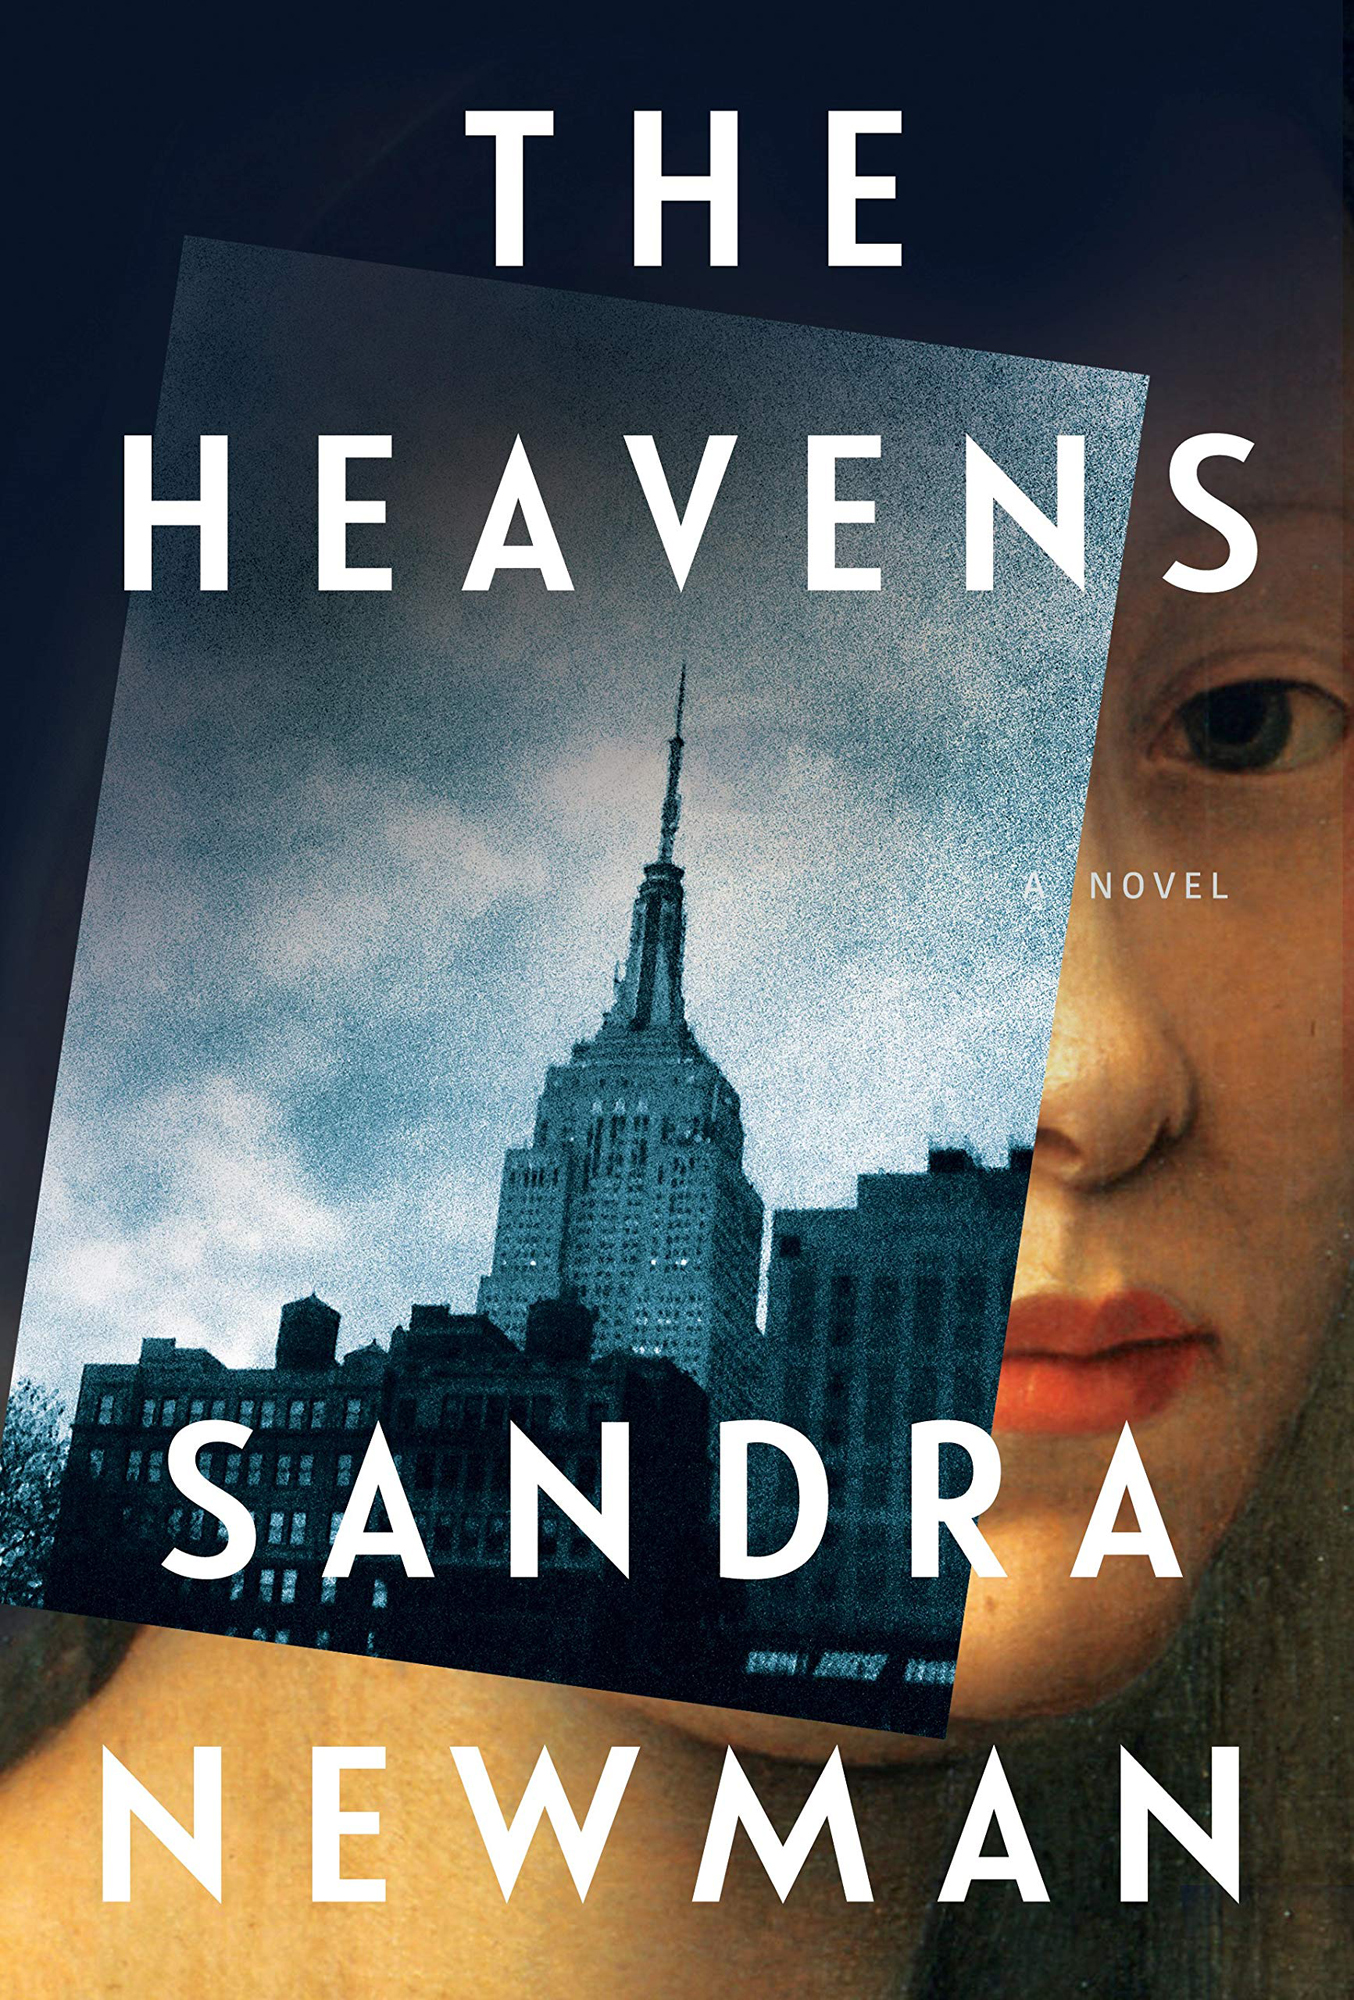 The Heavens, by Sandra Newman